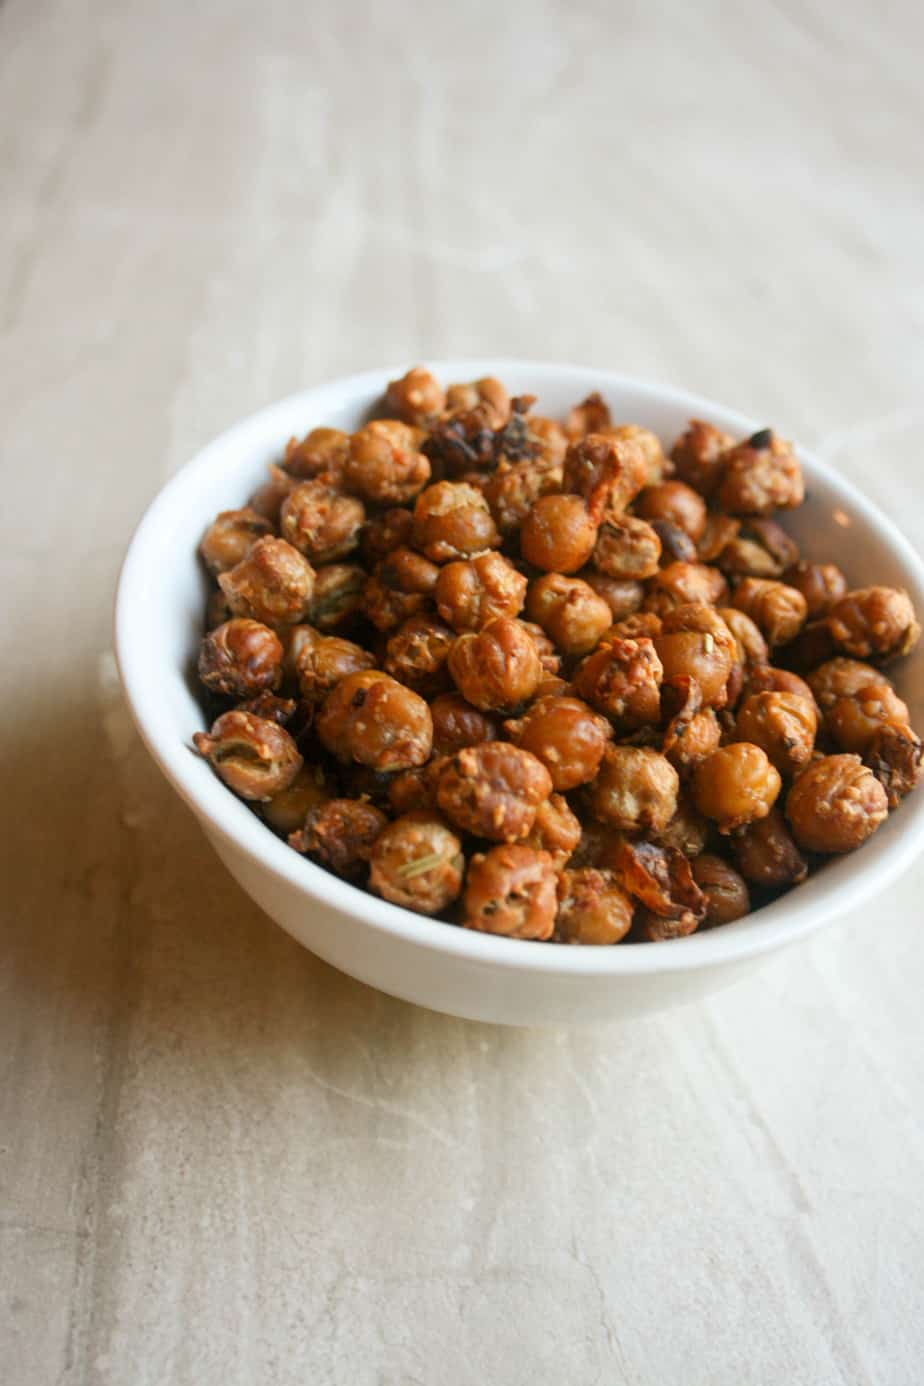 Crunchy roasted chickpeas are the perfect healthy snack or topping for a salad!